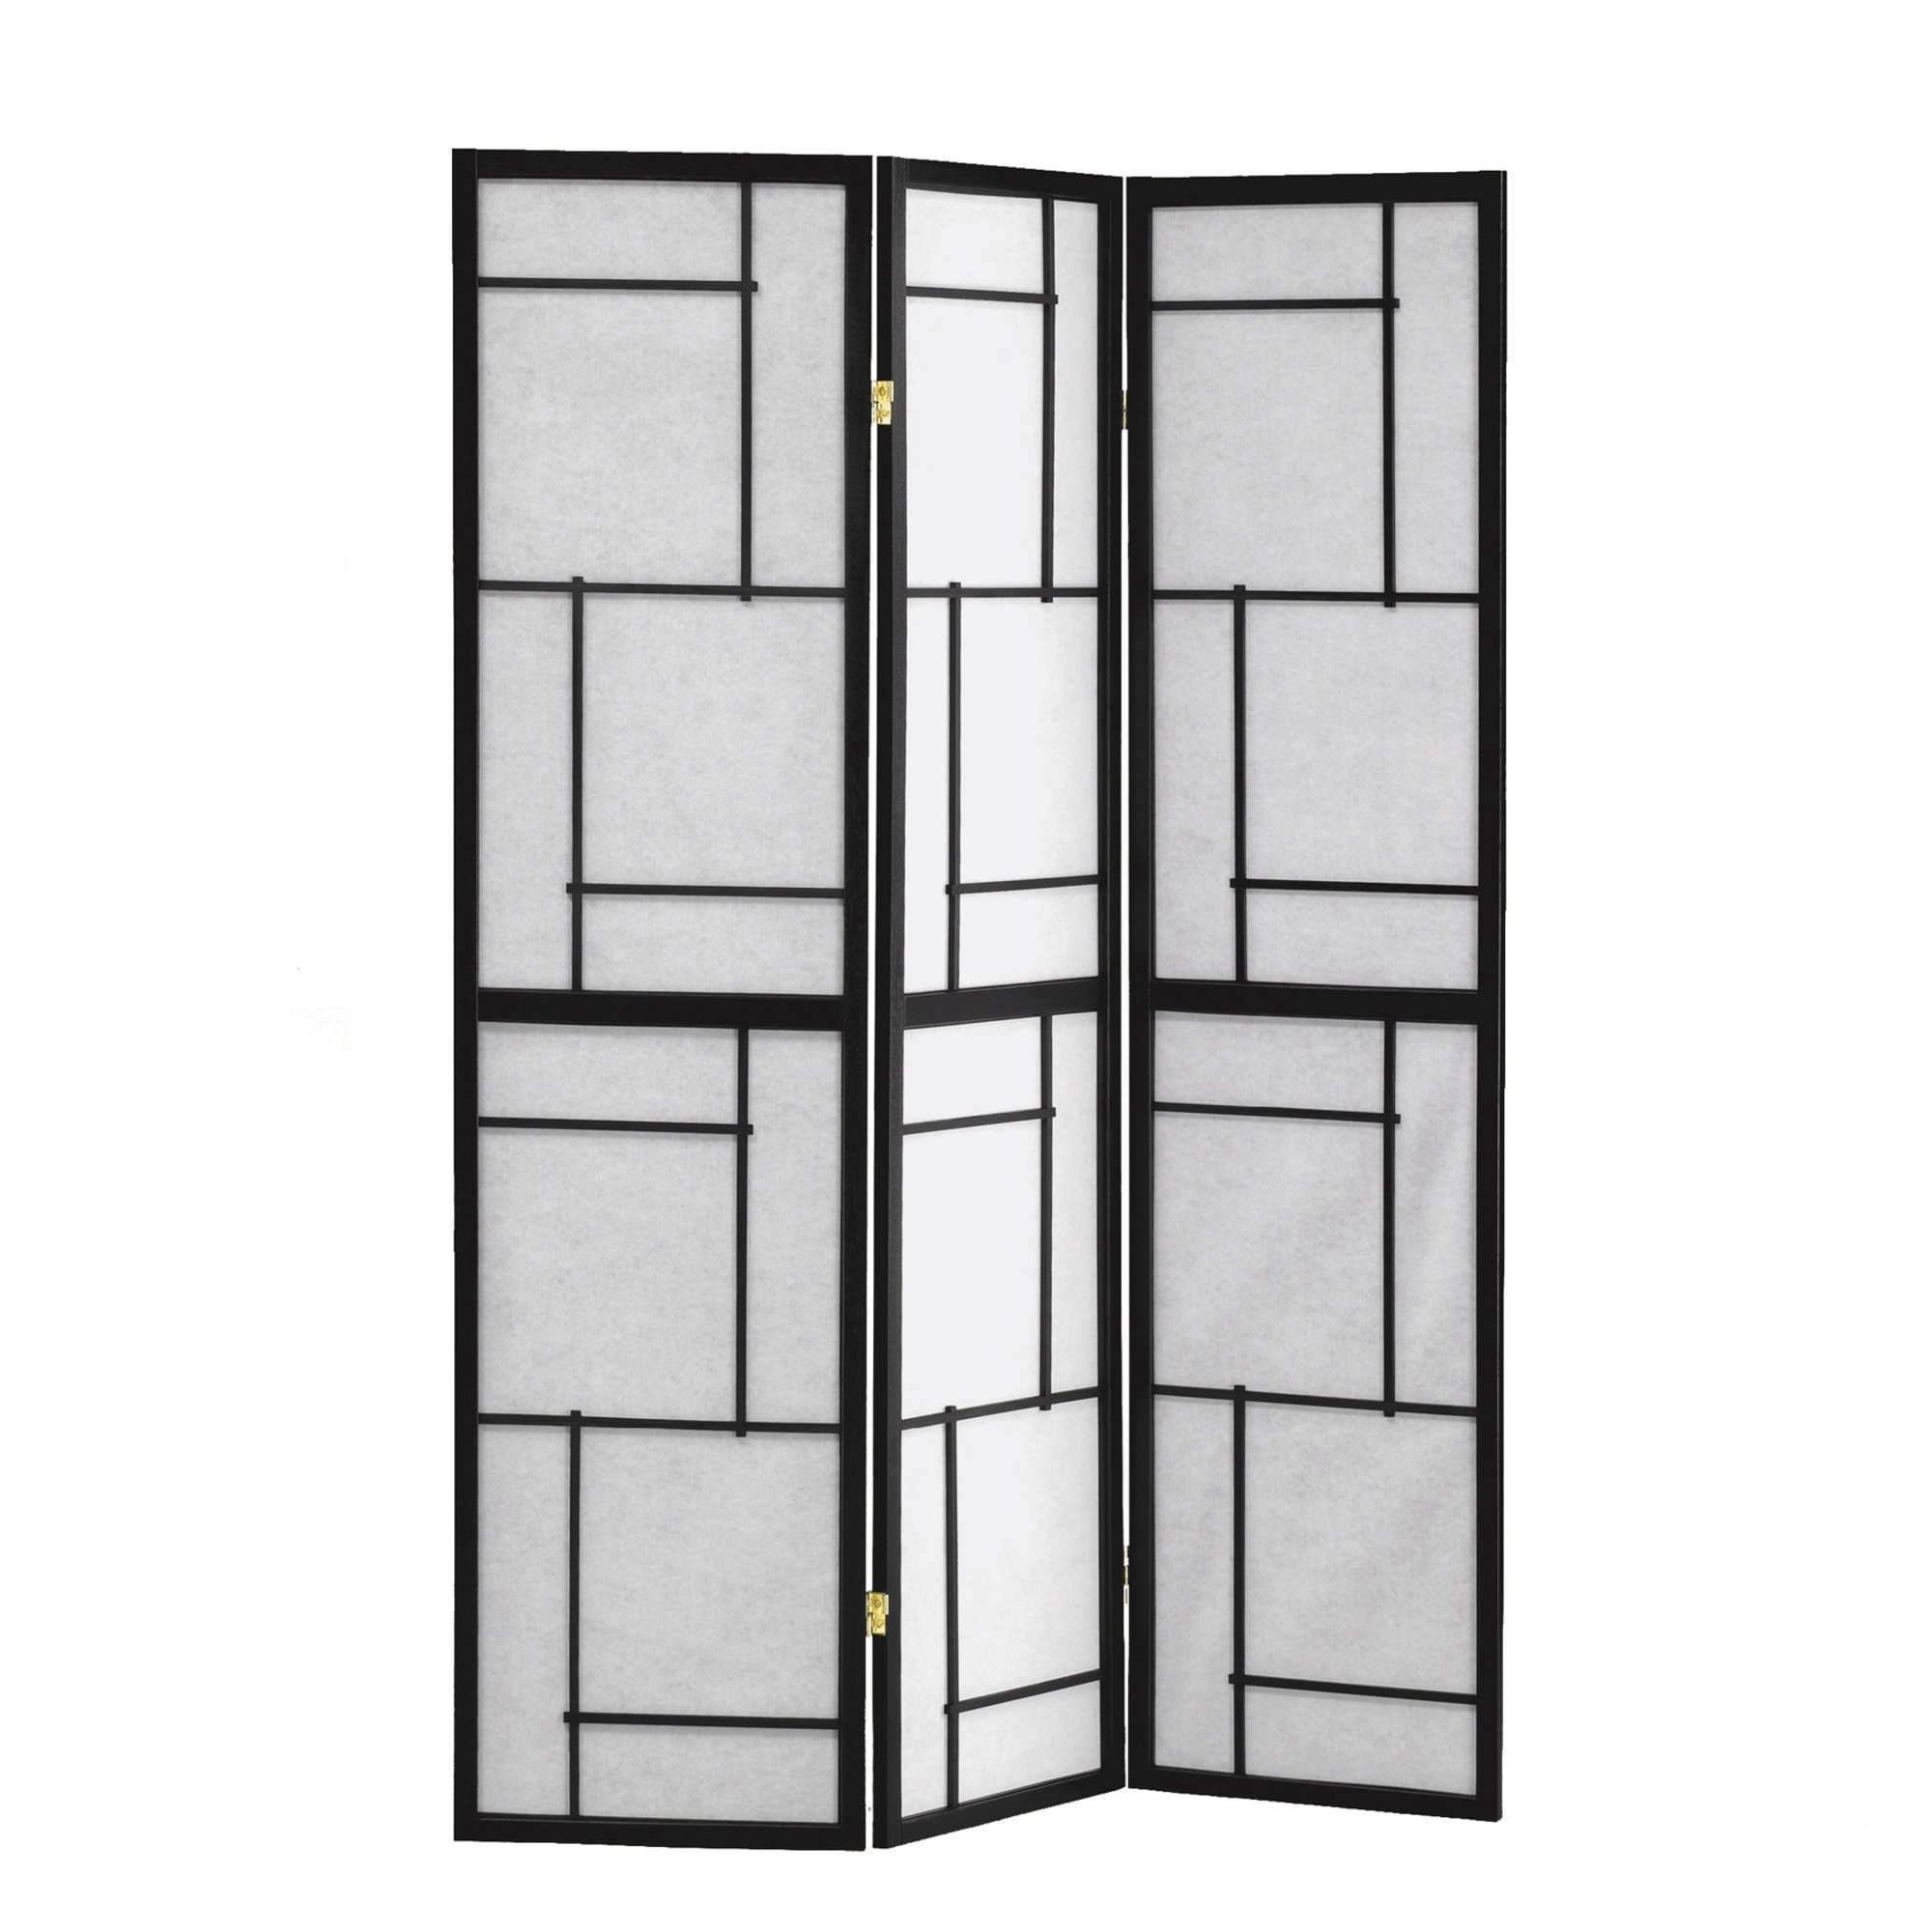 Folding Screen - 3 Panel Black Frame in 2018 | Products | Pinterest ...